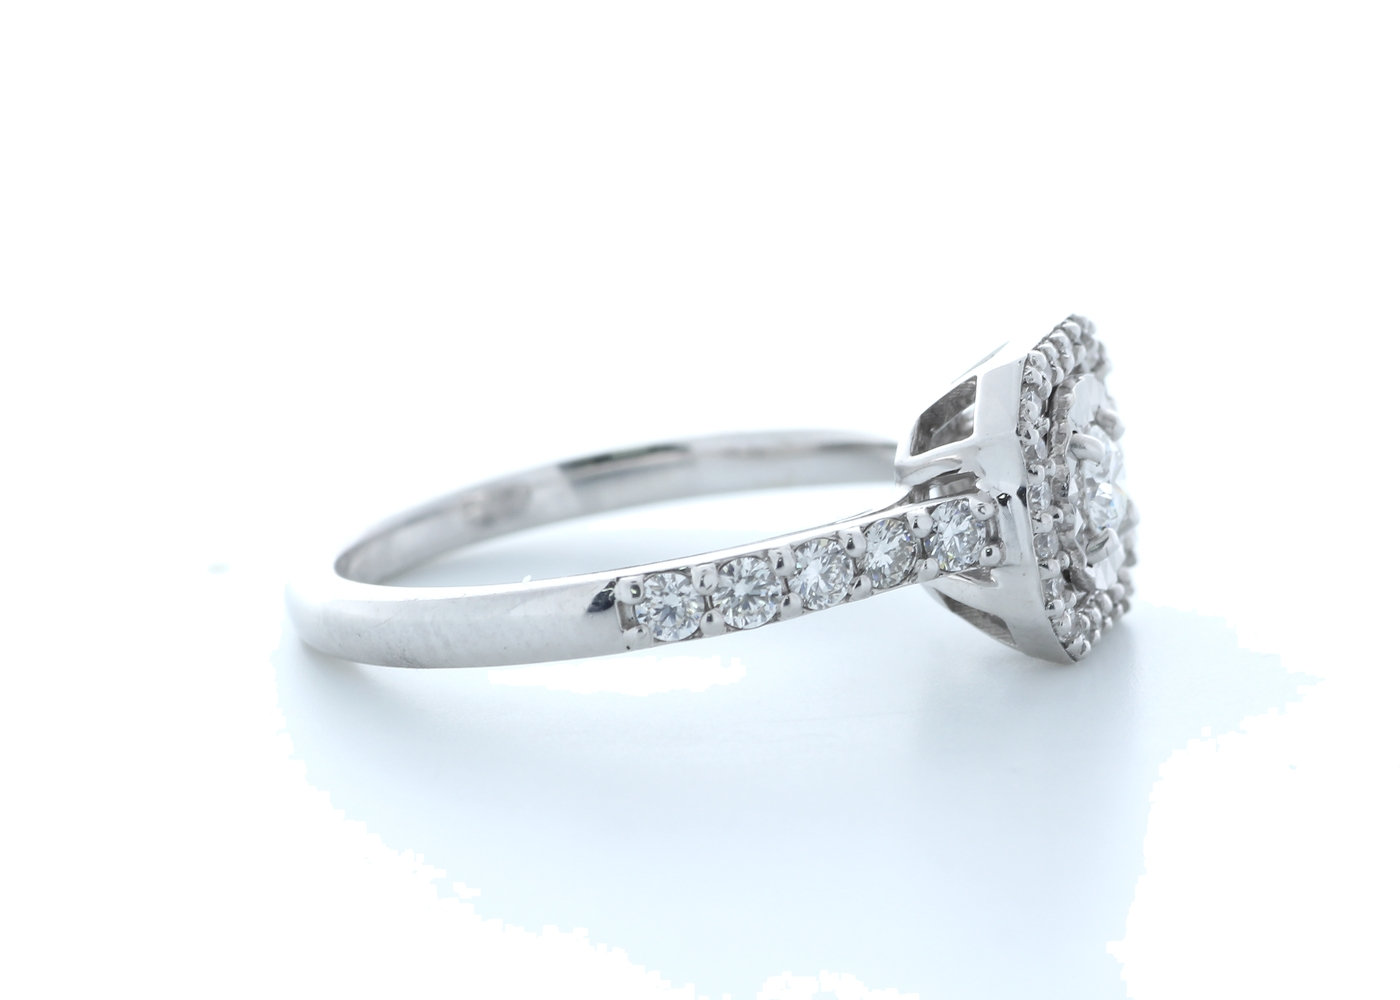 18ct White Gold Diamond Halo Setting Ring 0.55 Carats - Image 4 of 5